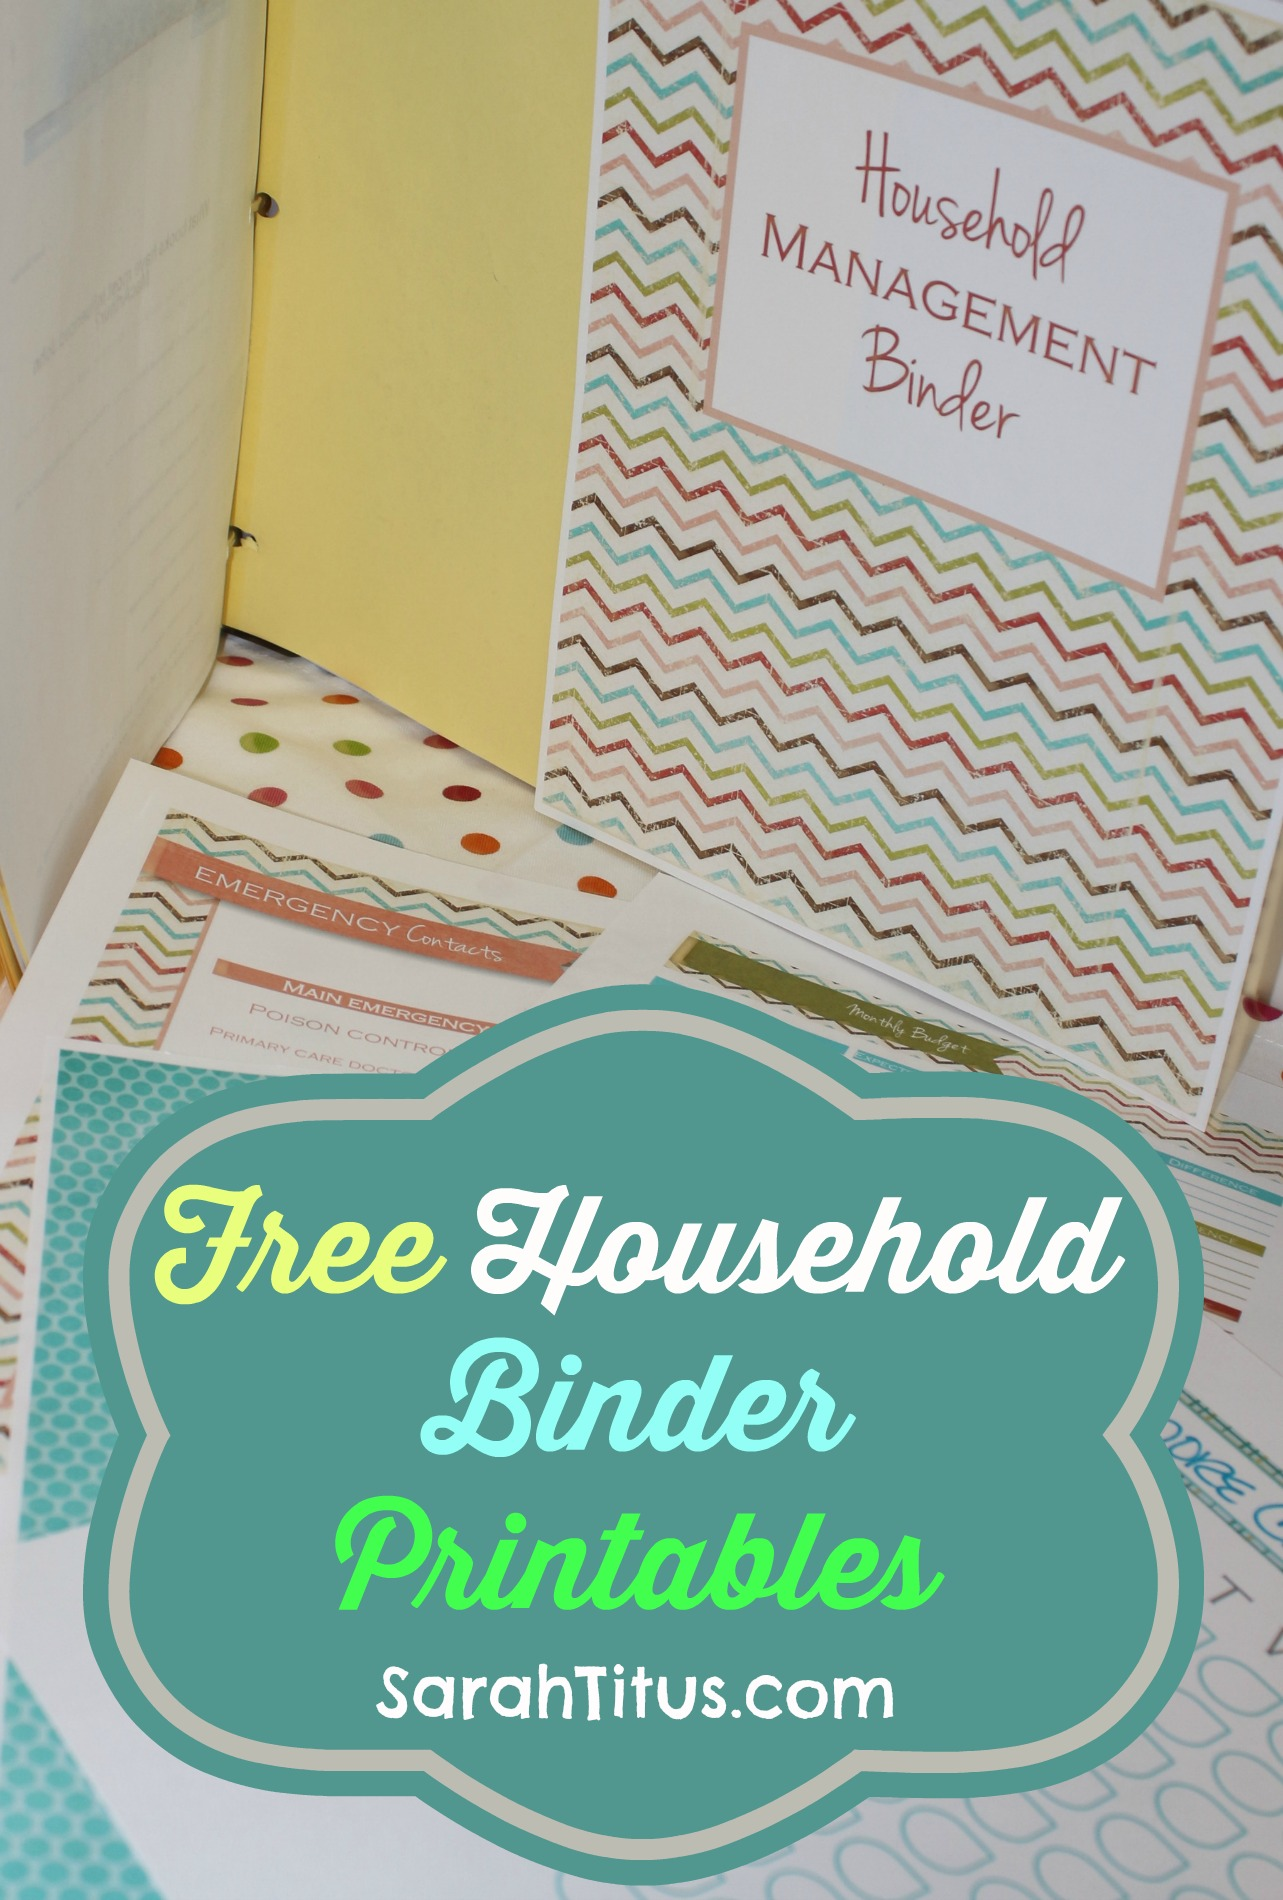 Free Printables: Household Binder